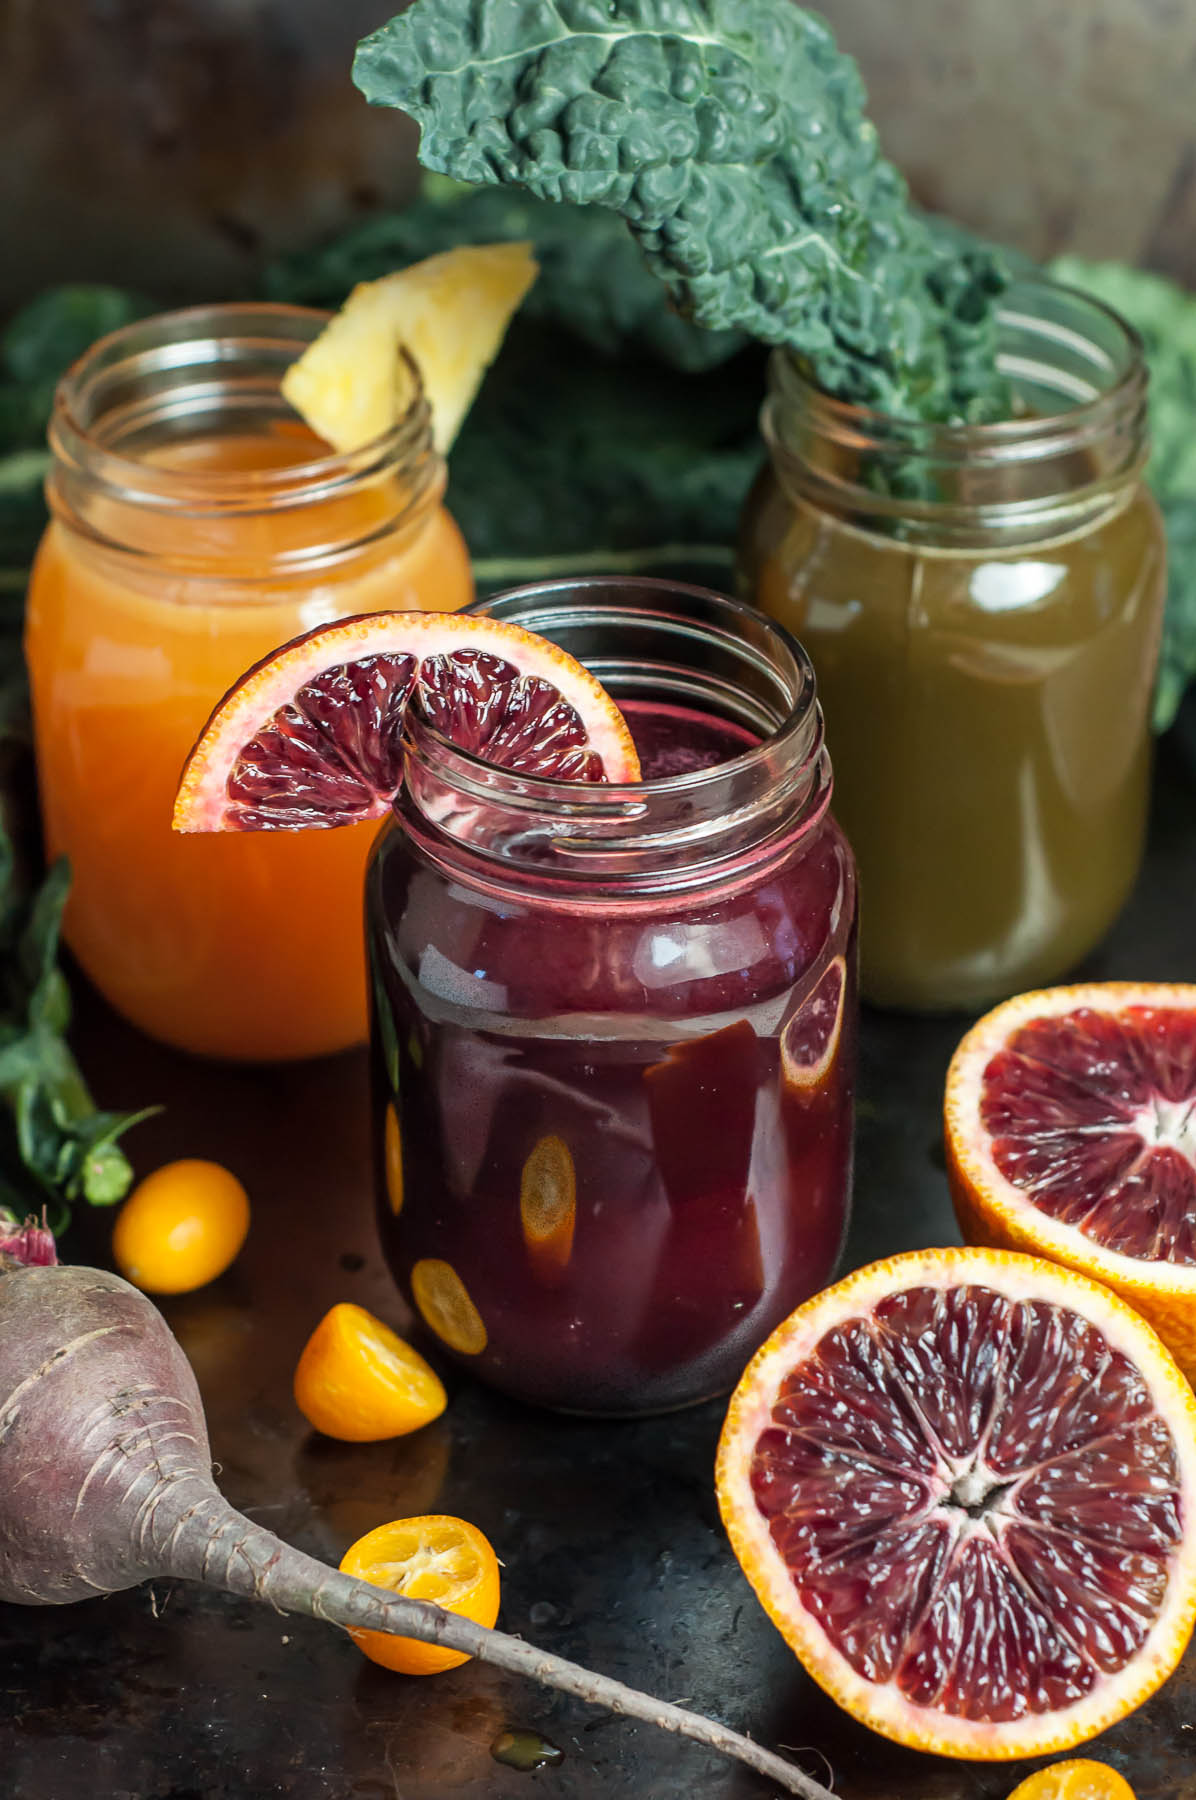 Homemade Winter Juices